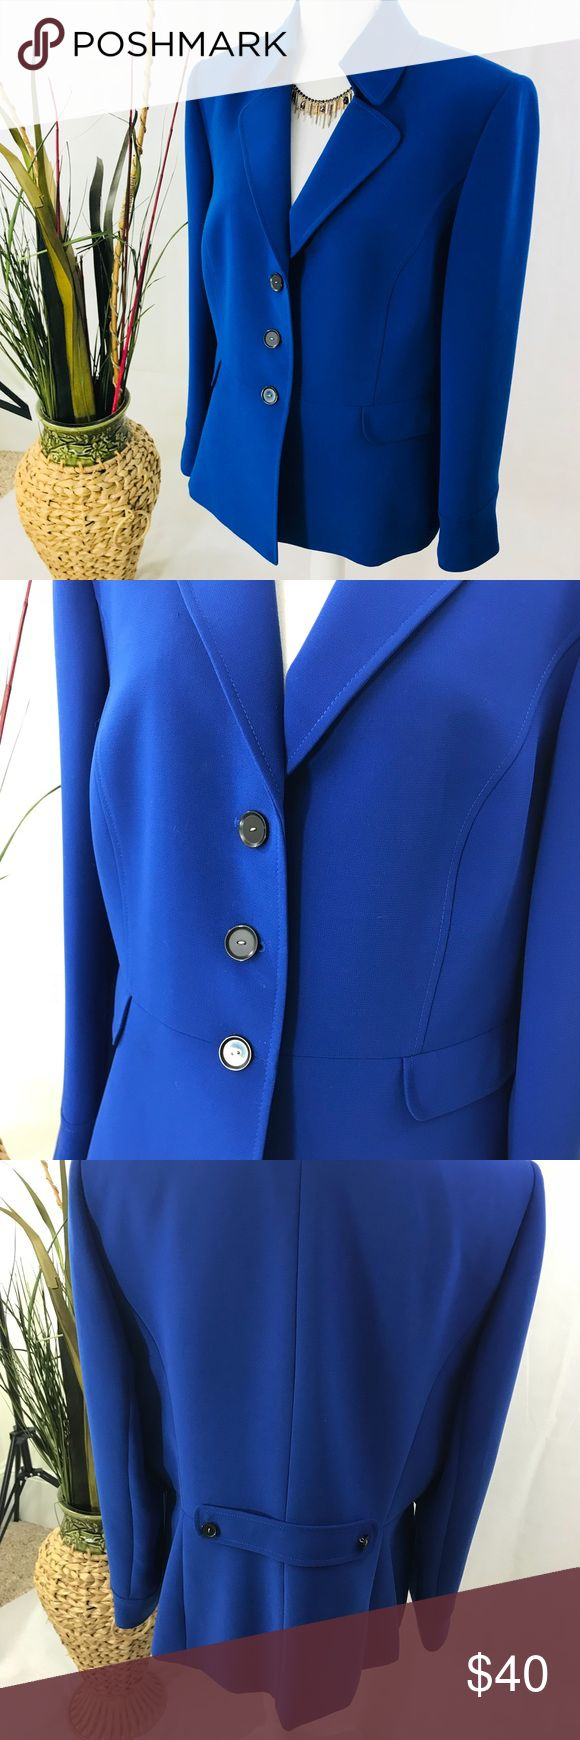 Tahari Jacket Royal blue dress ( blazer) jacket. Button closure, long sleeves, medium weight. Excellent condition and quality Size more like a 16. Tahari Jackets & Coats